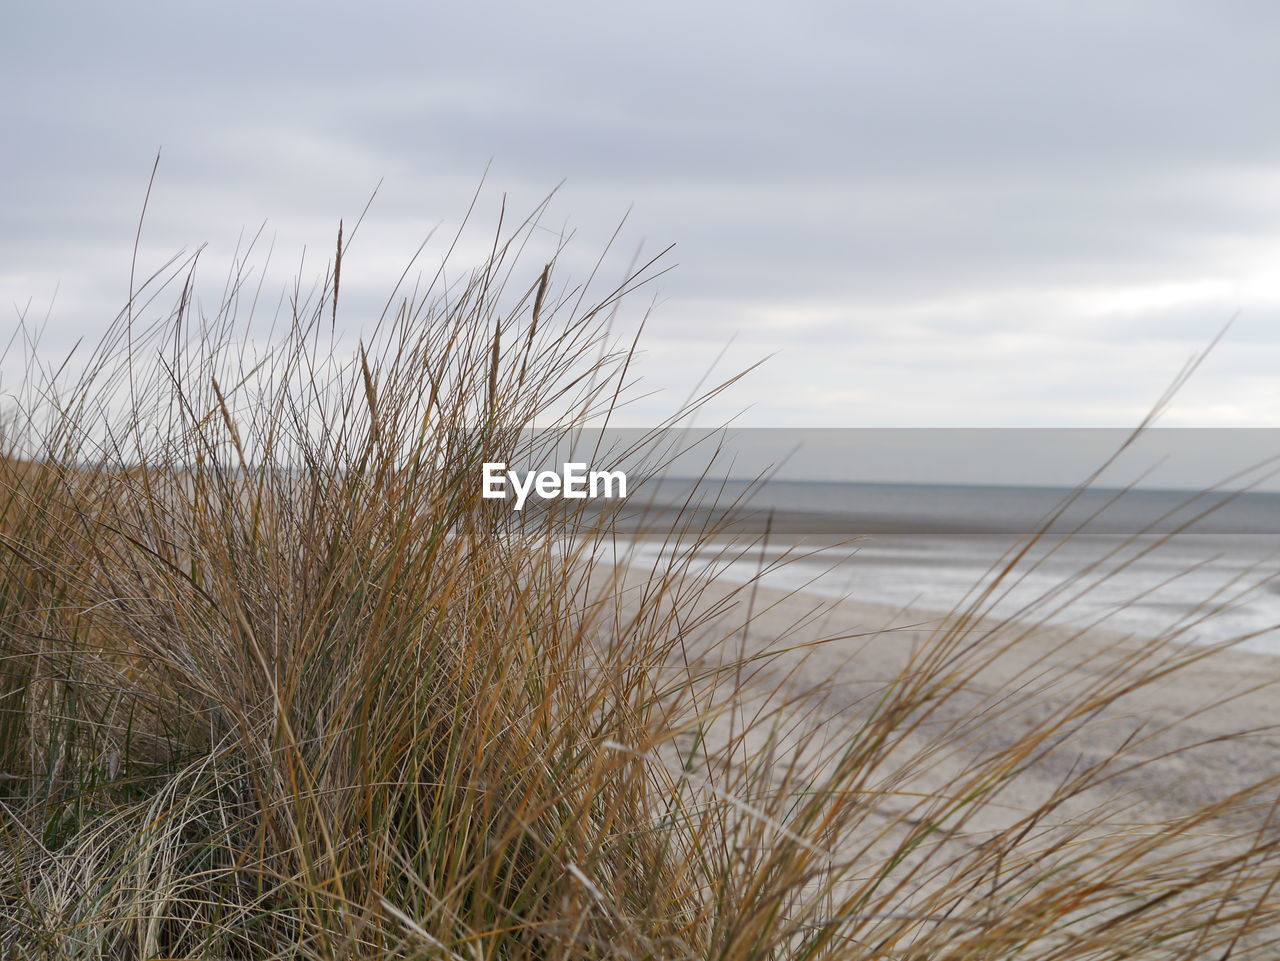 sky, water, sea, tranquility, beauty in nature, beach, cloud - sky, plant, grass, land, horizon over water, nature, scenics - nature, tranquil scene, growth, no people, horizon, marram grass, sand, outdoors, timothy grass